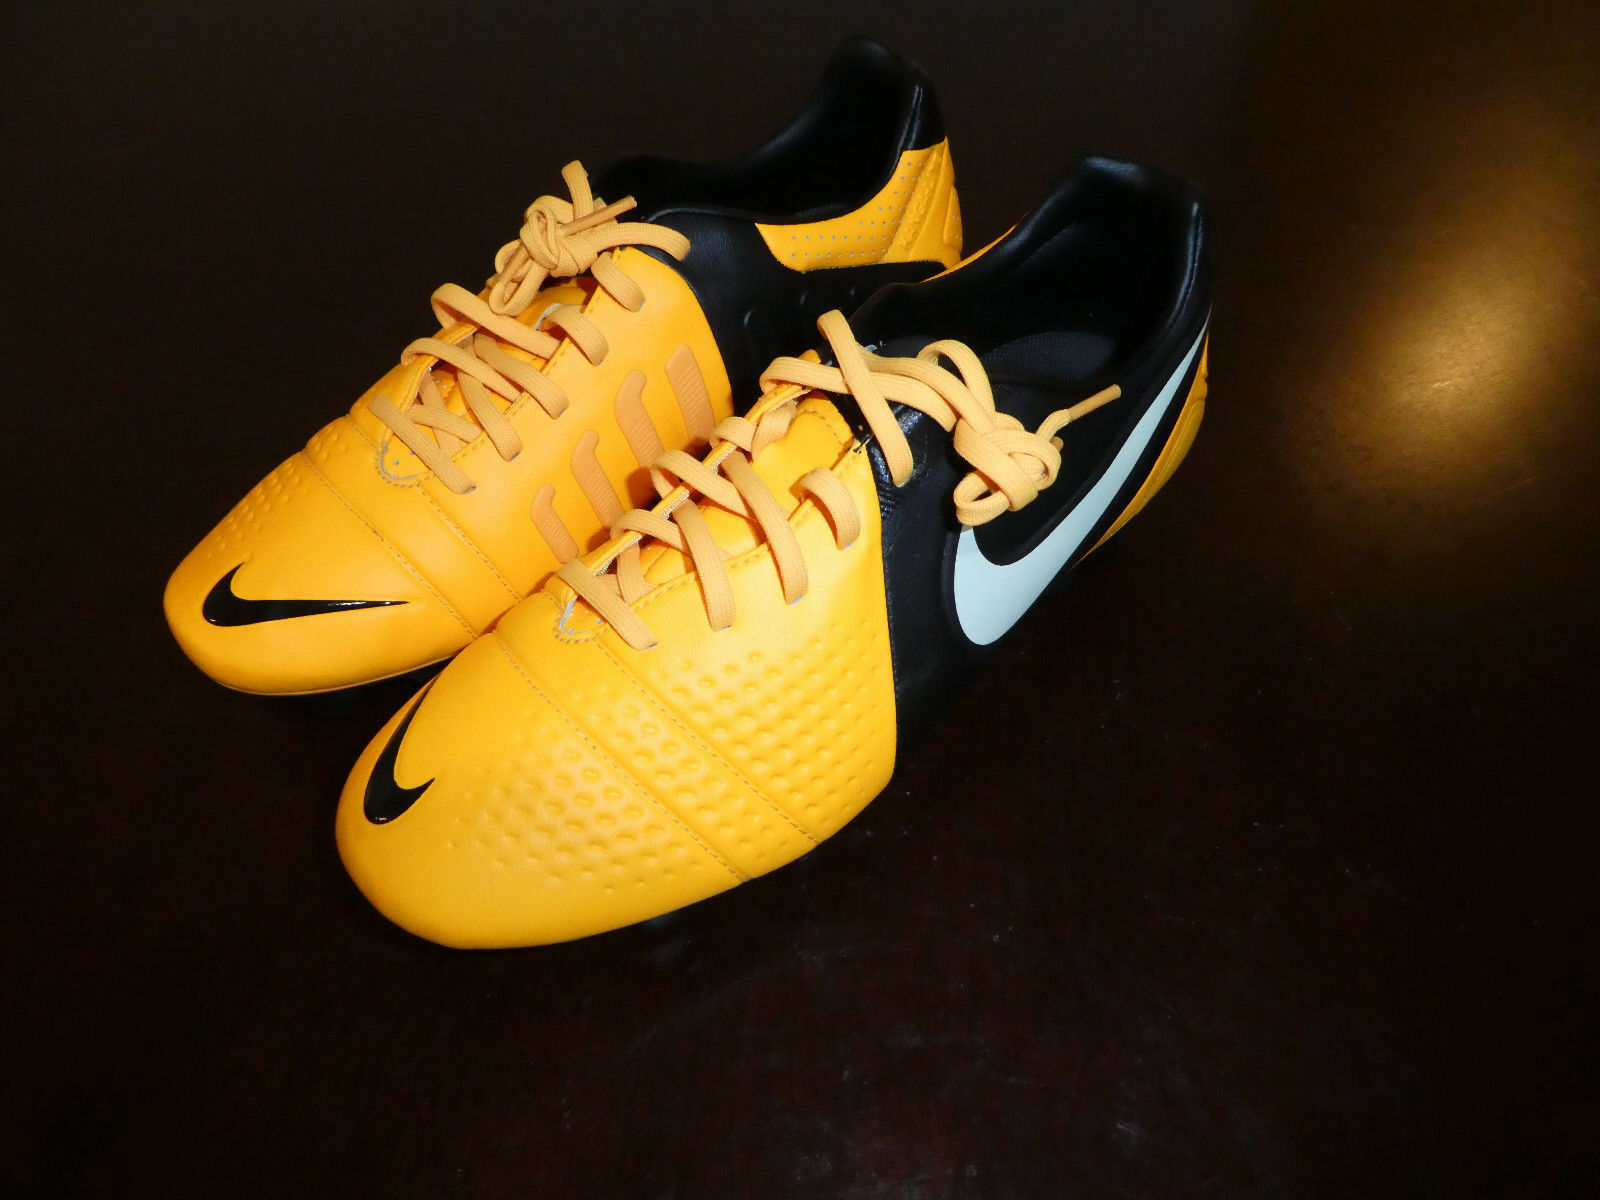 Nike CTR360 Trequartista III FG Soccer Cleats new shoes 525162 810